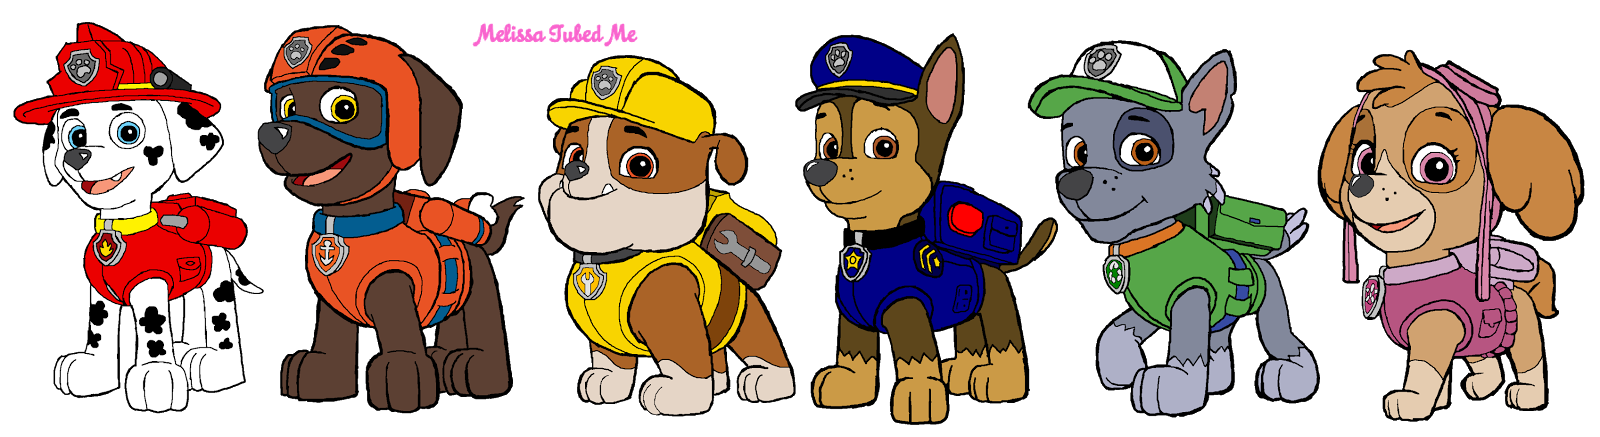 Paw patrol clipart skye clip library download Paw patrol clipart skye - ClipartFest clip library download